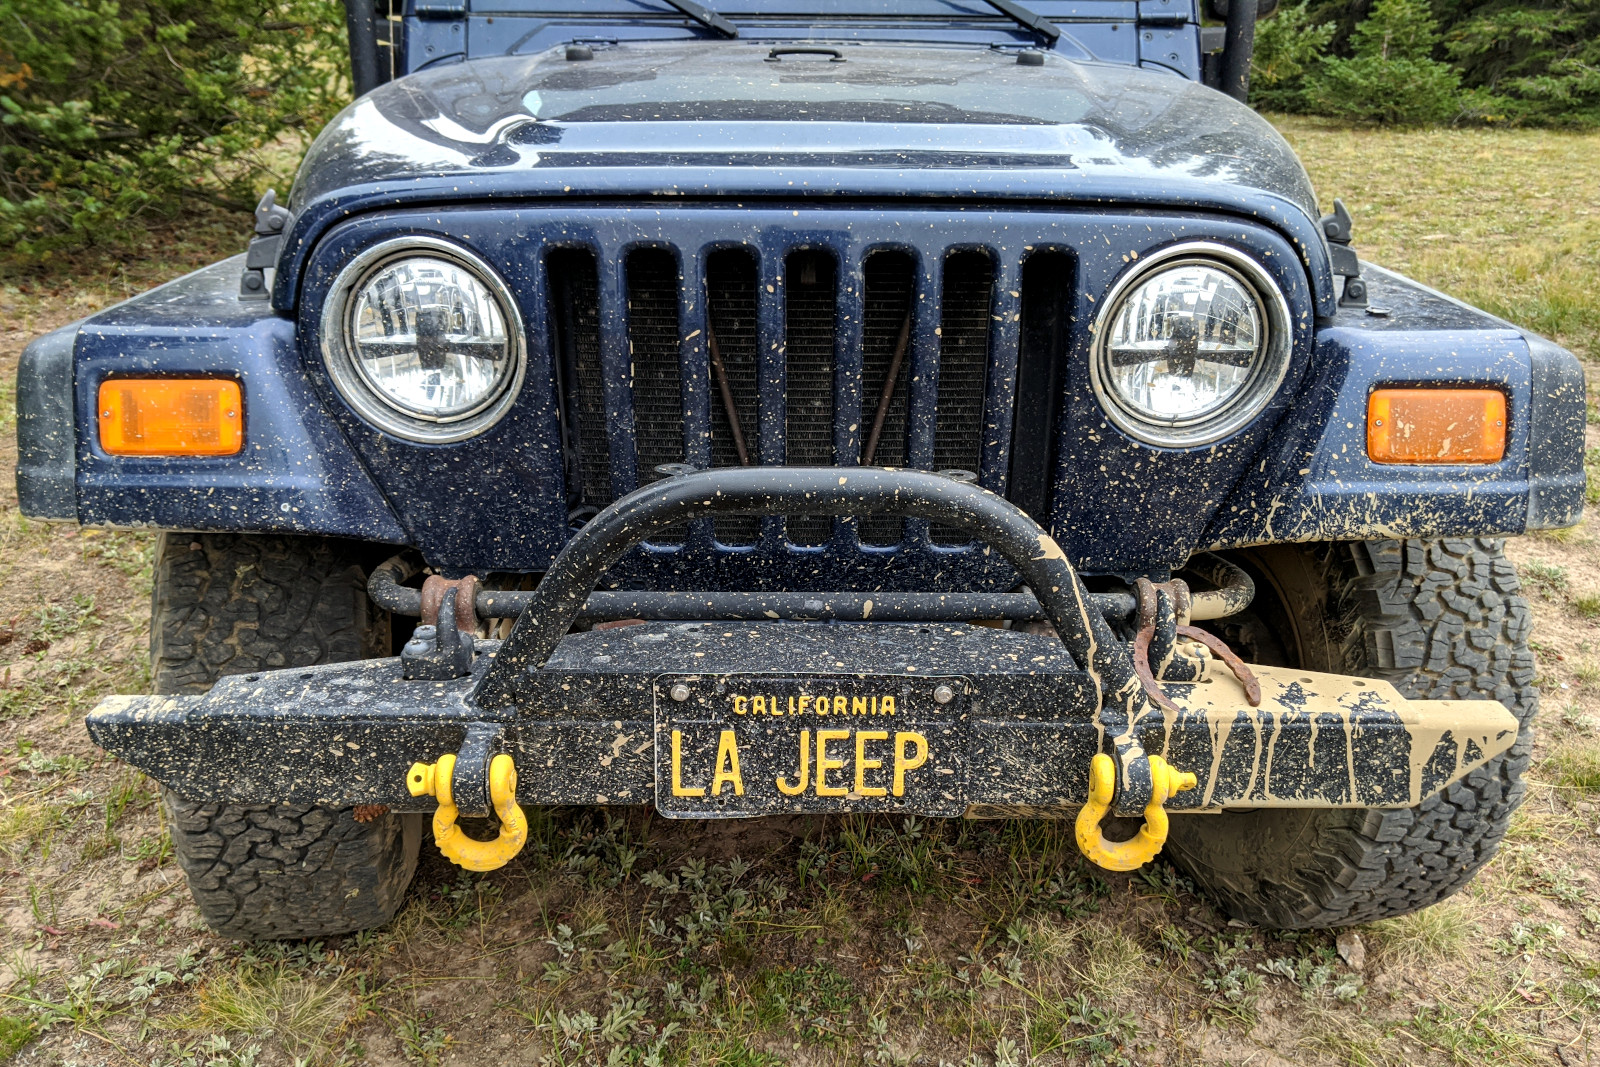 La Jeep's muddy front bumper, plus an old rusty horseshoe